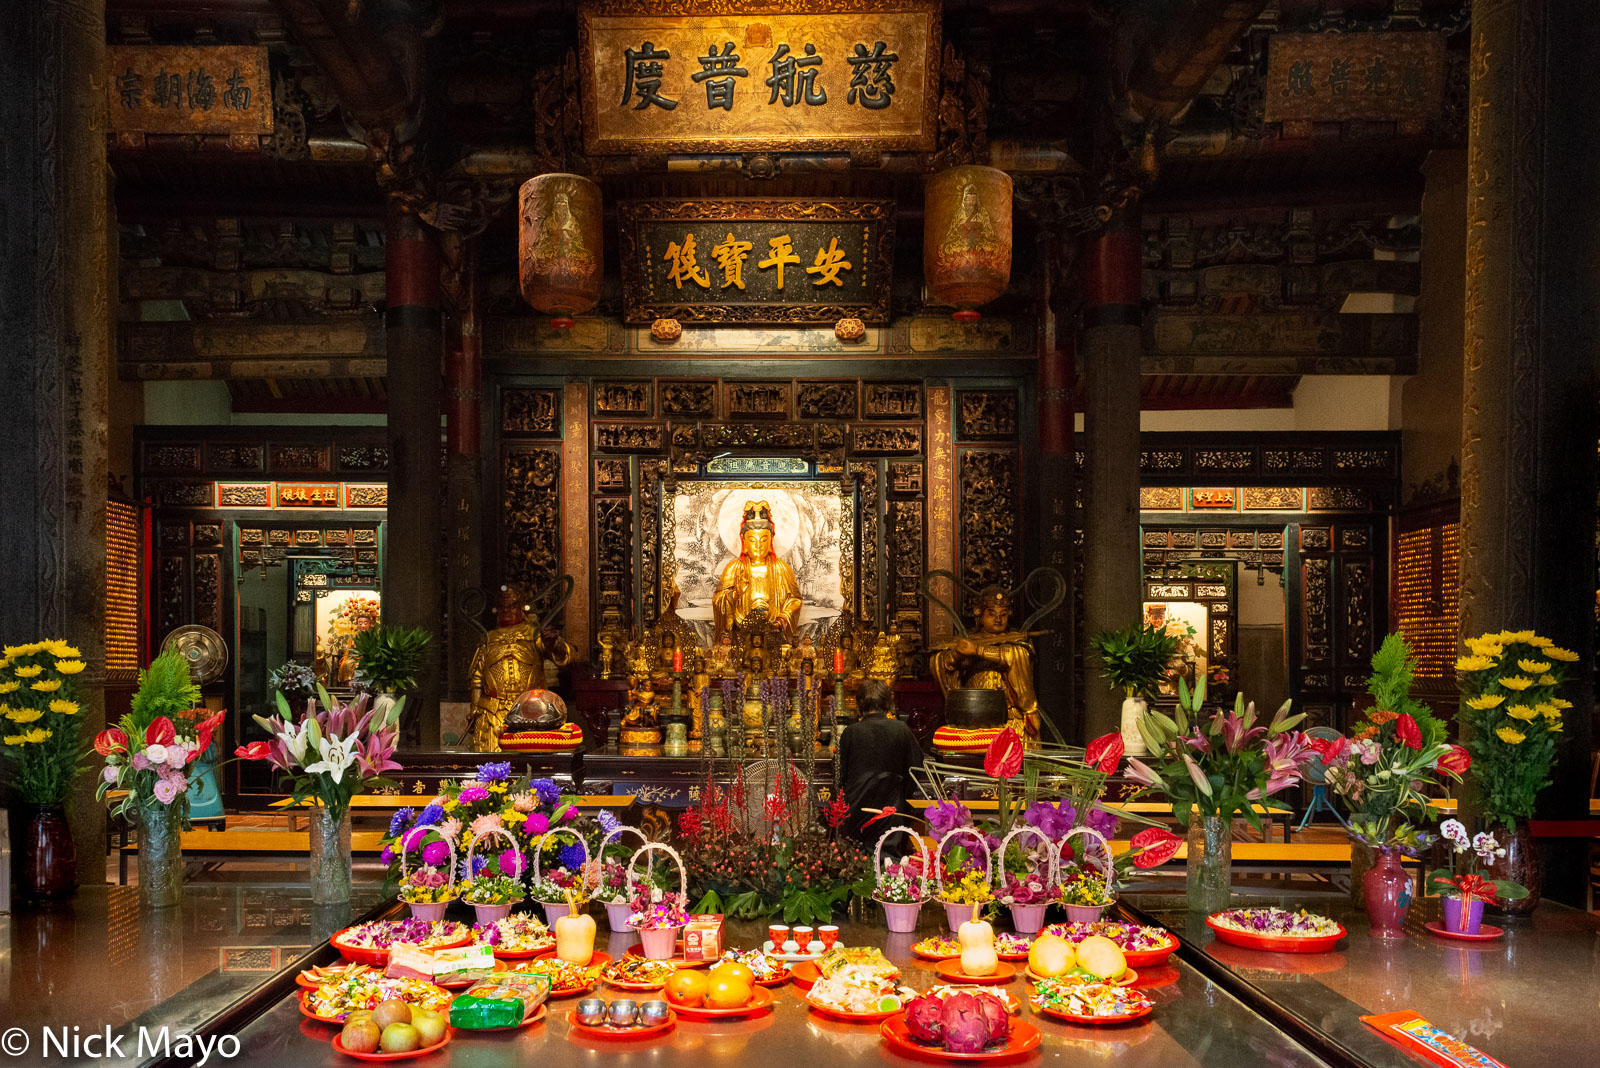 Offerings at the Tamsui Longshan temple built in 1858.